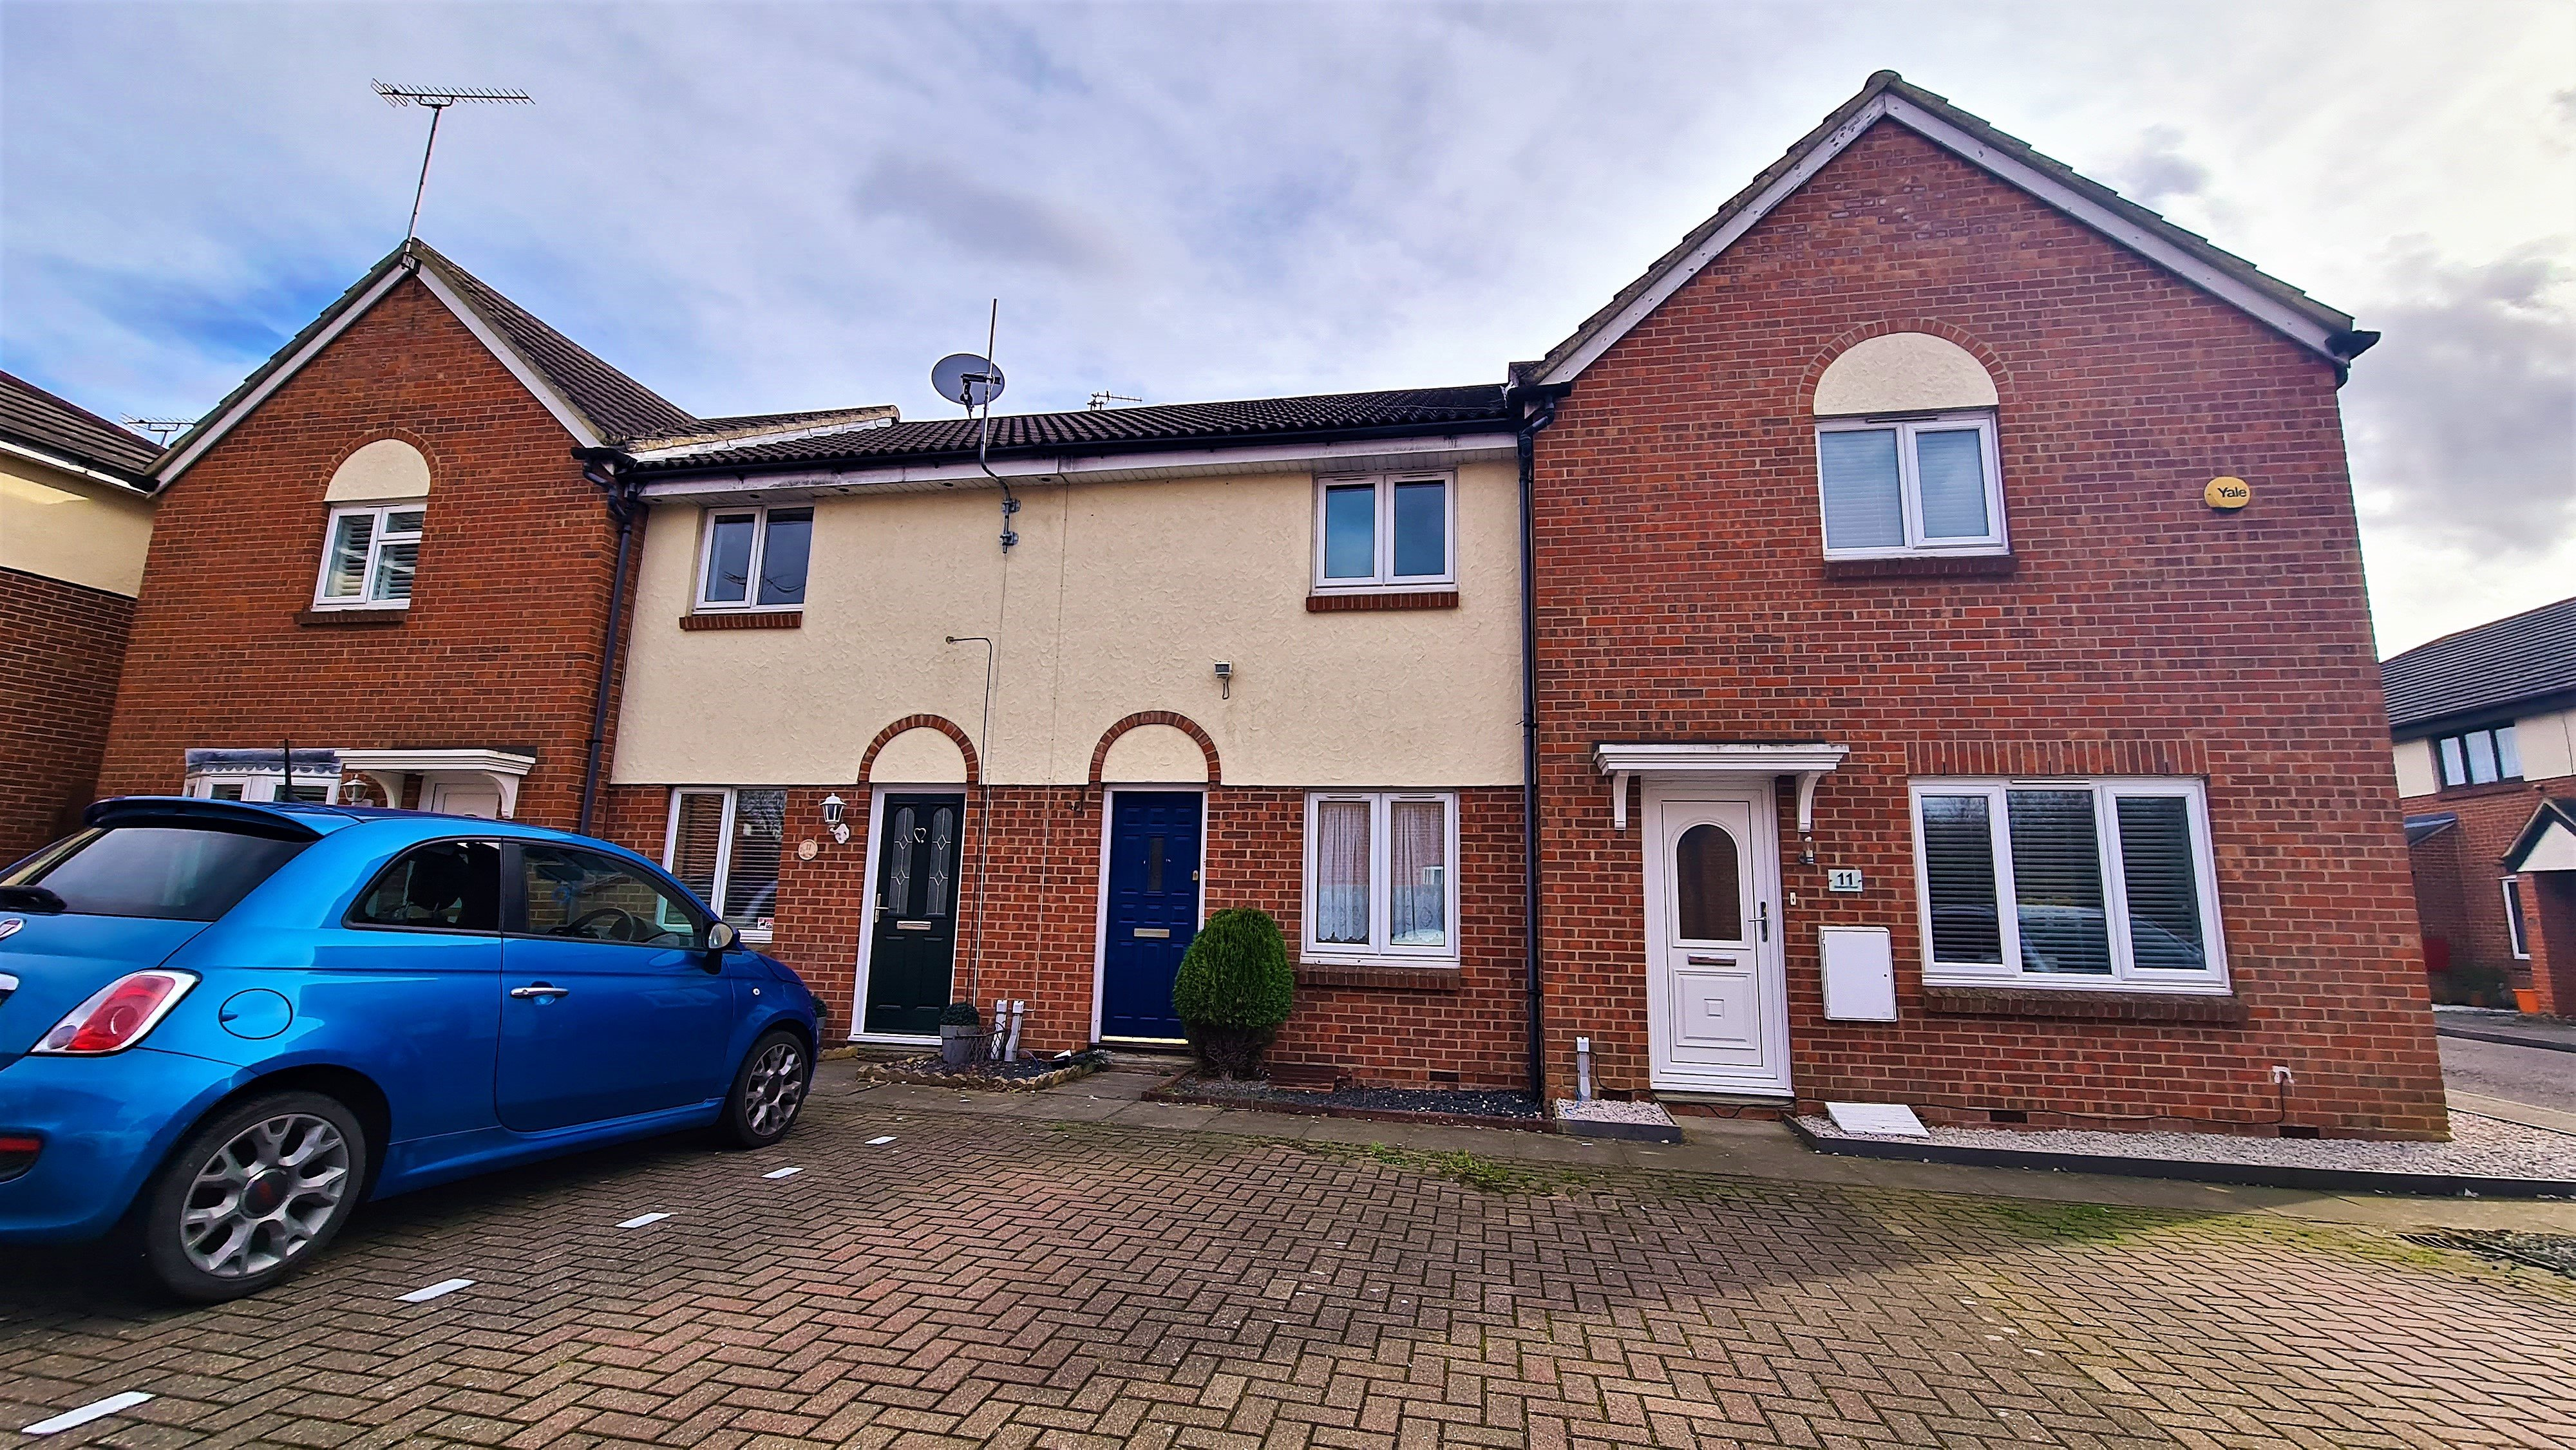 2 bed terraced house to rent in Maitland Road, Wickford - Property Image 1